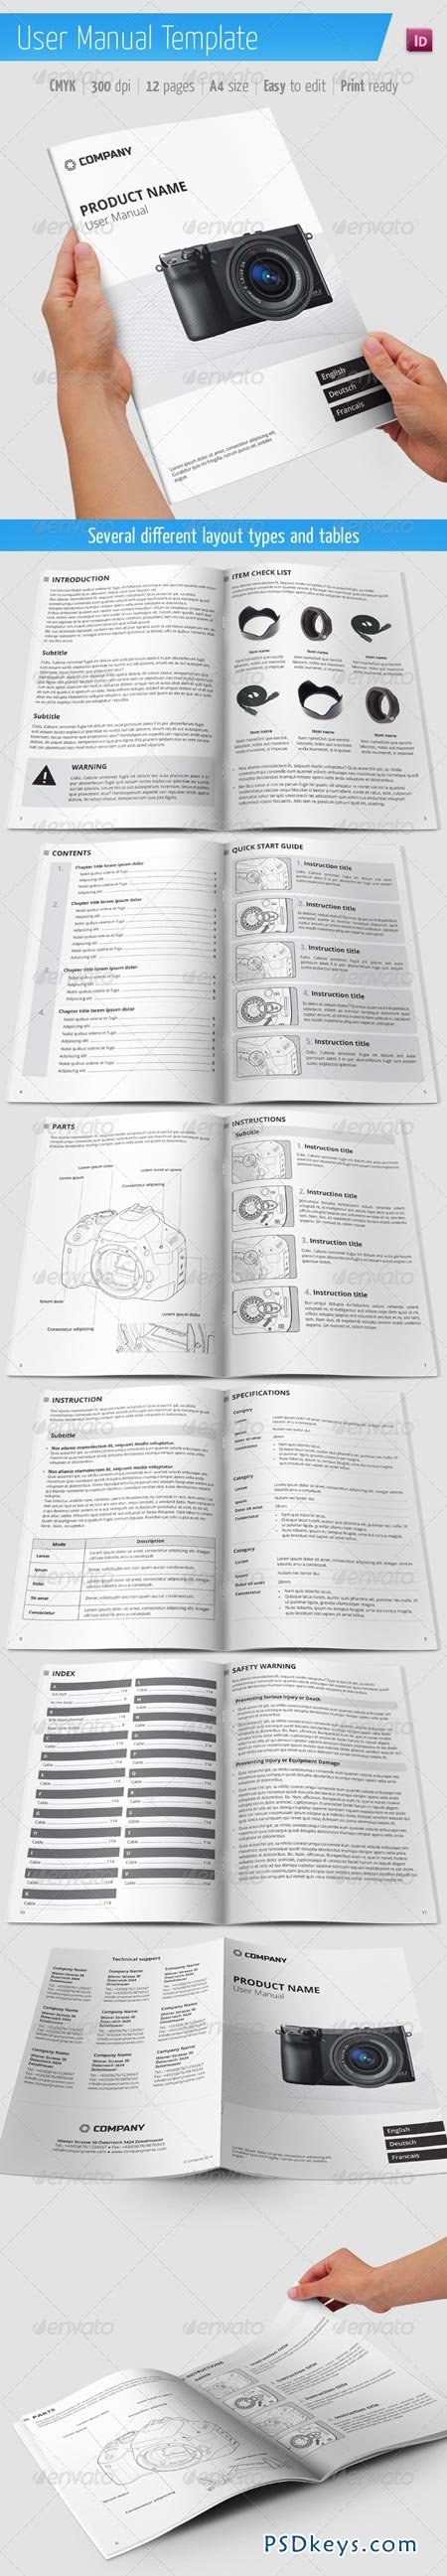 User Manual Template 6477700  Free User Guide Template